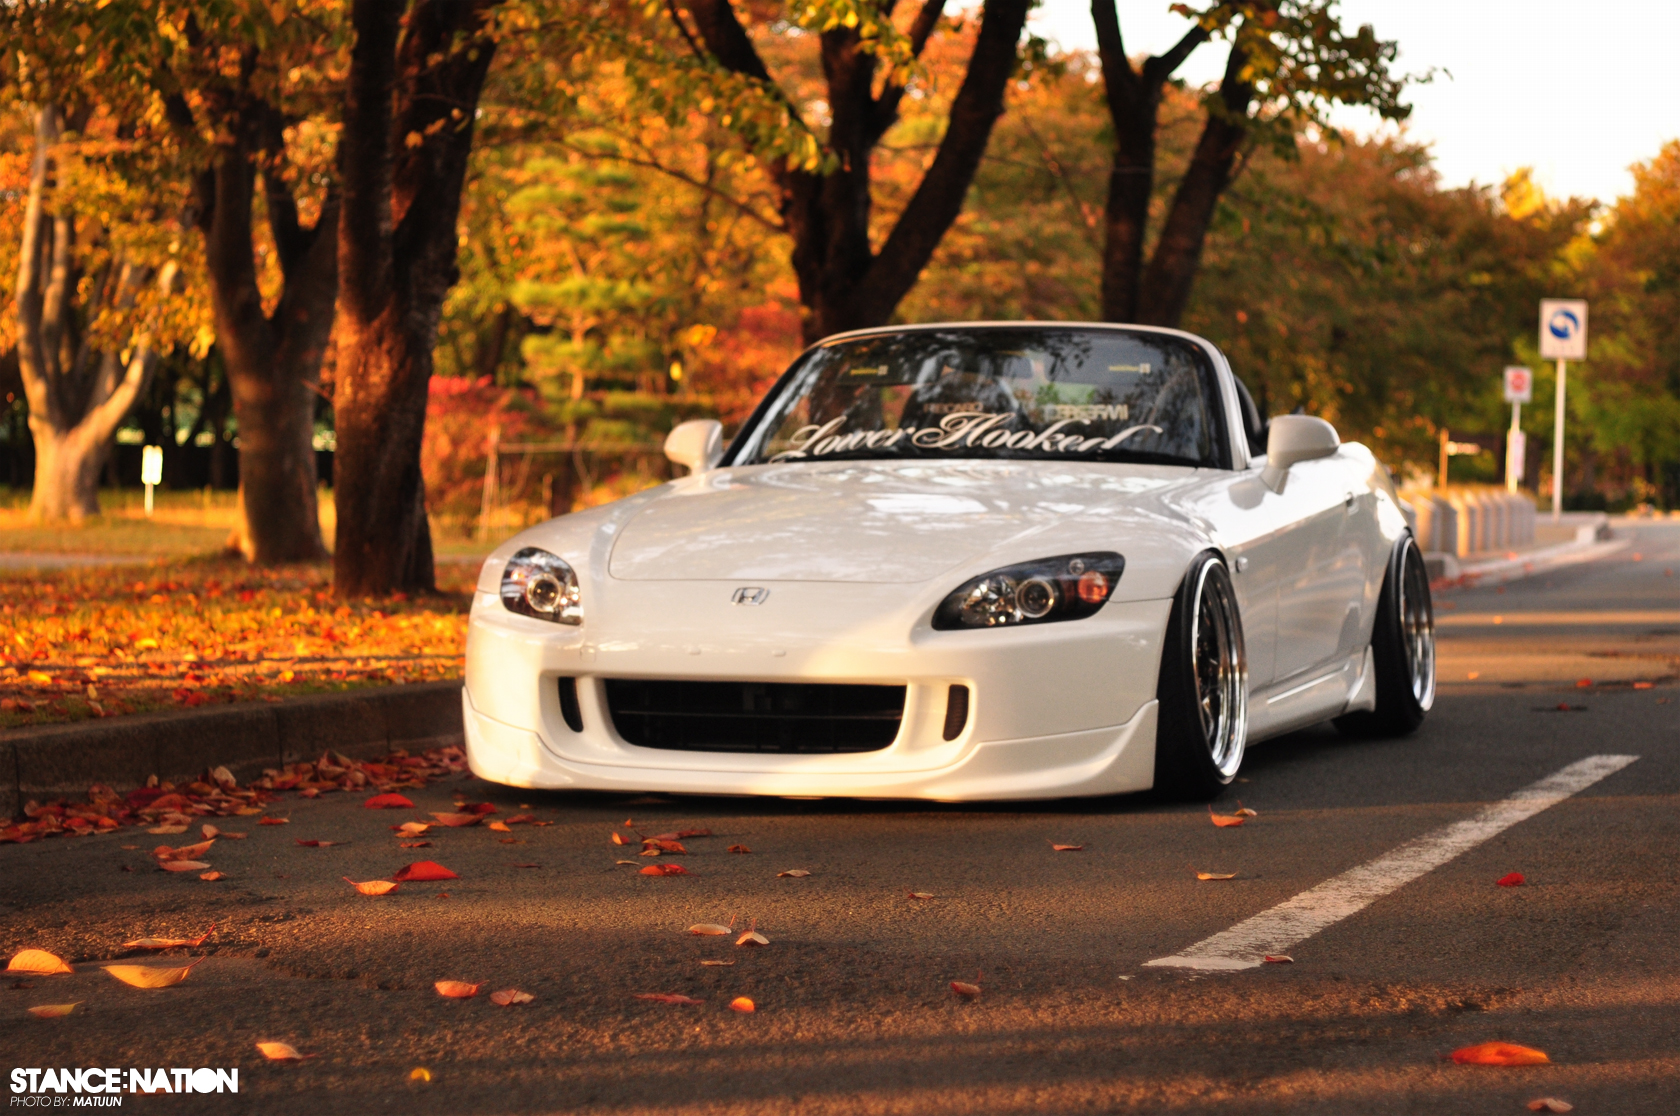 Jdm Car Wallpaper 1920x1080 Http Www Stancenation Com Wallpaper And Background